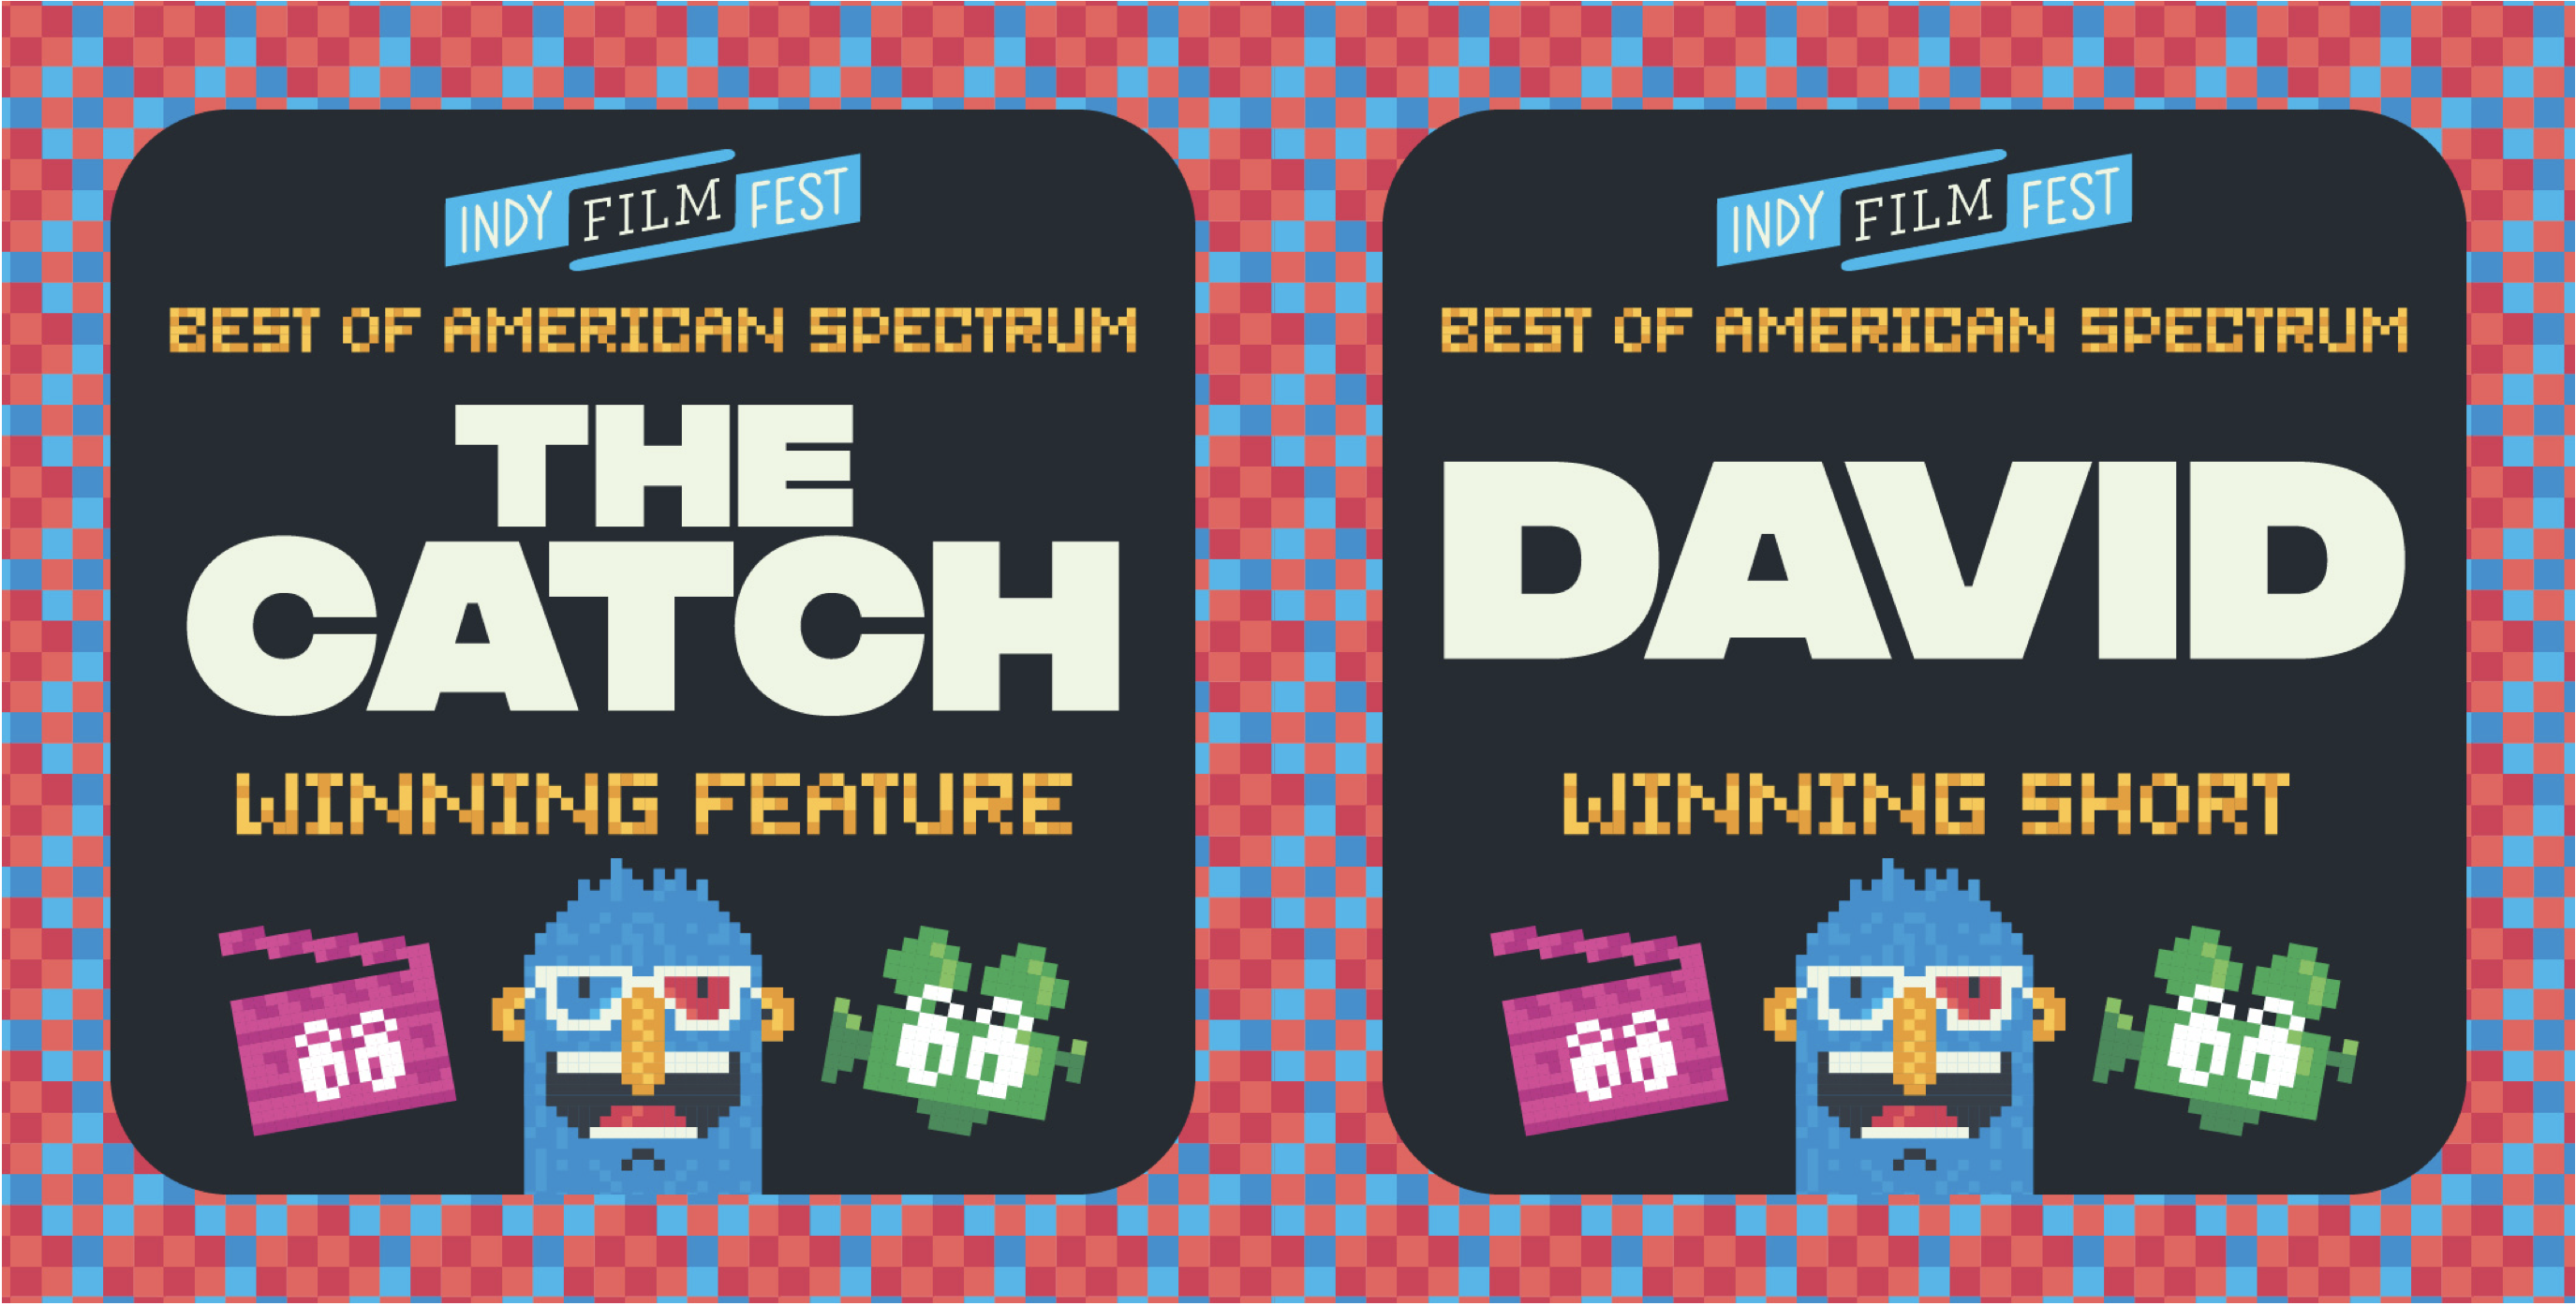 Best of American Spectrum: THE CATCH and DAVID